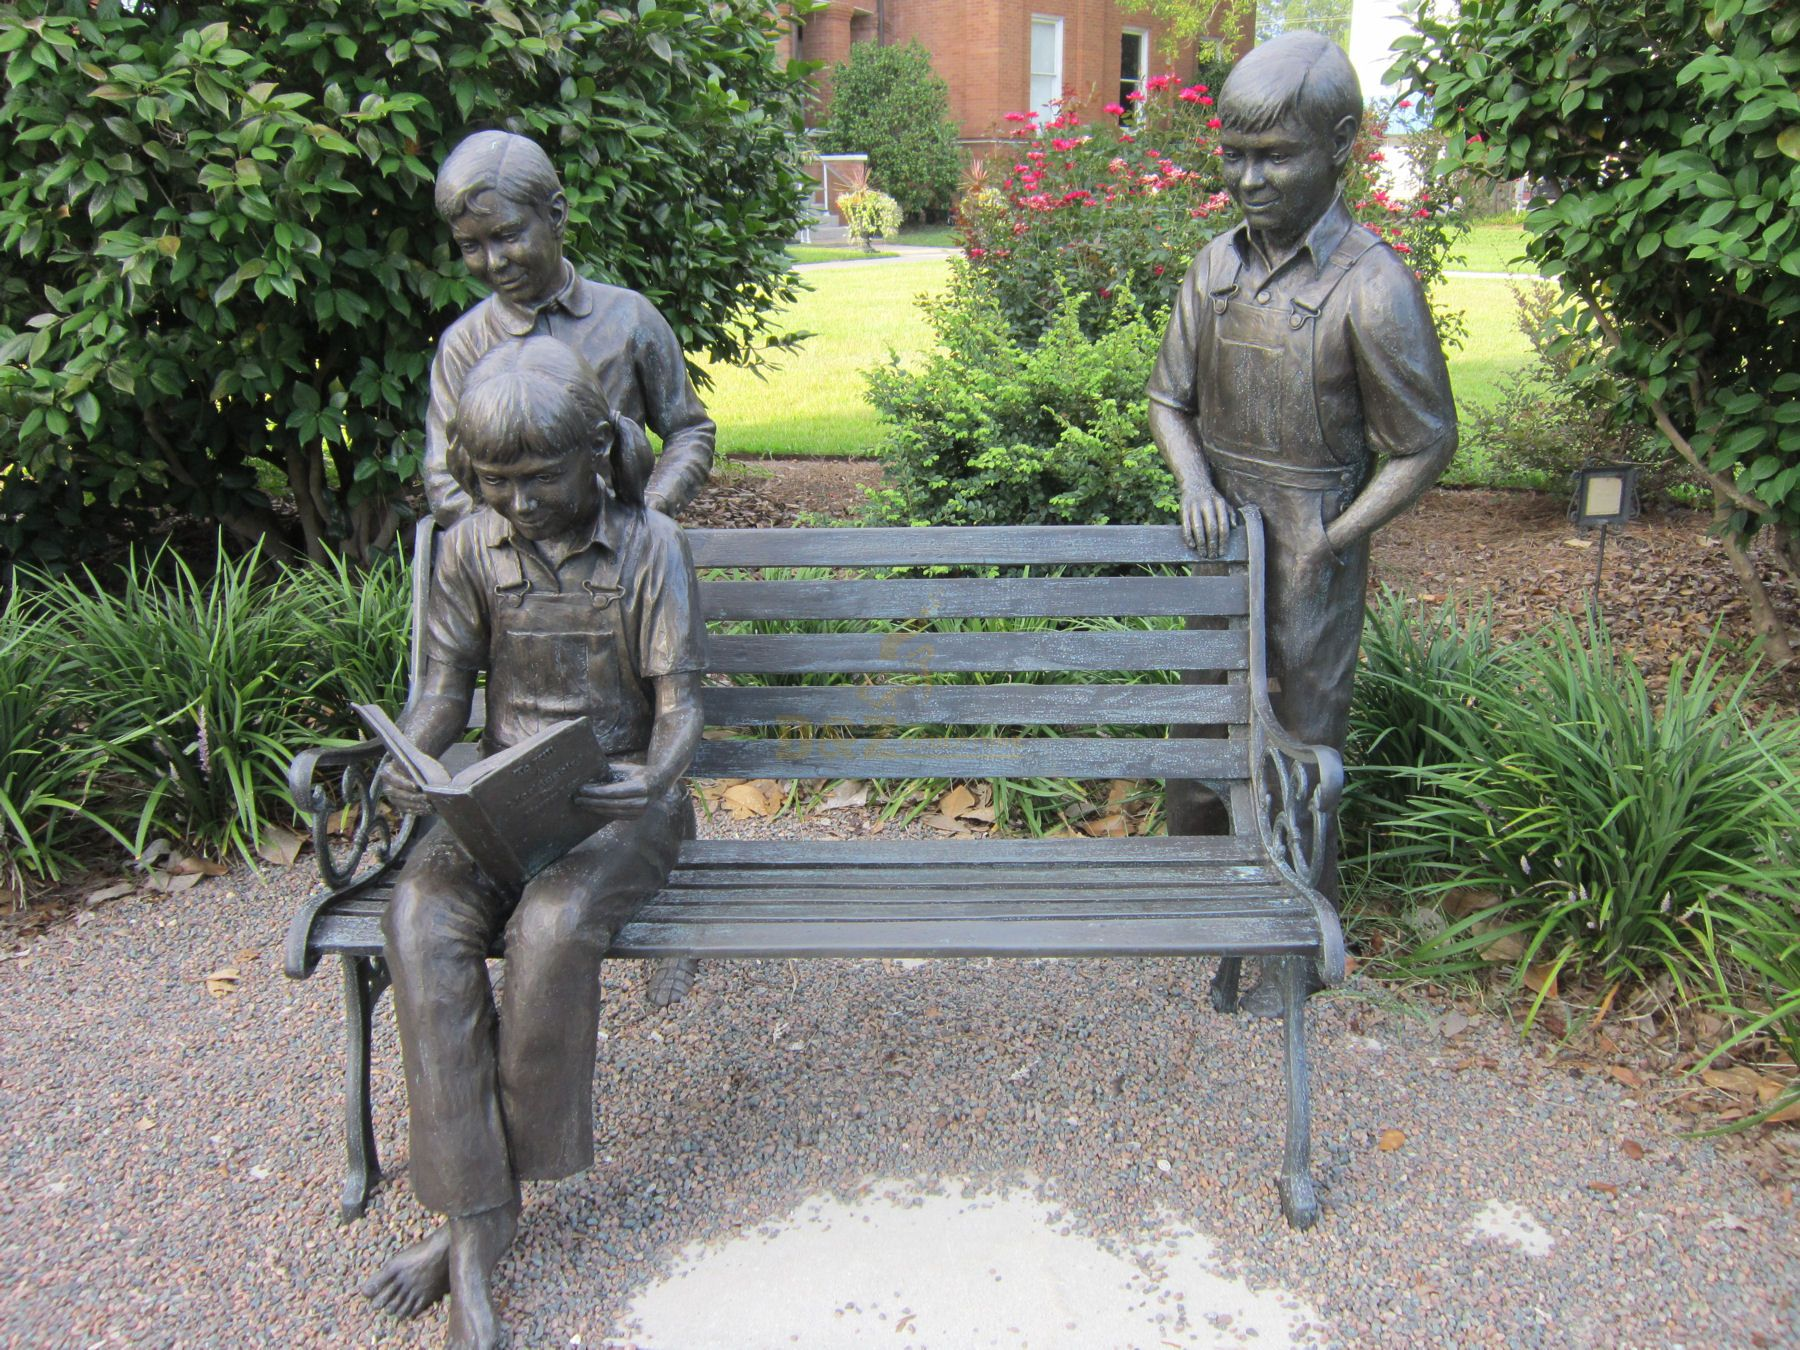 Garden Statue Life Size Bronze Chirldren Reading On Bench Sculptures